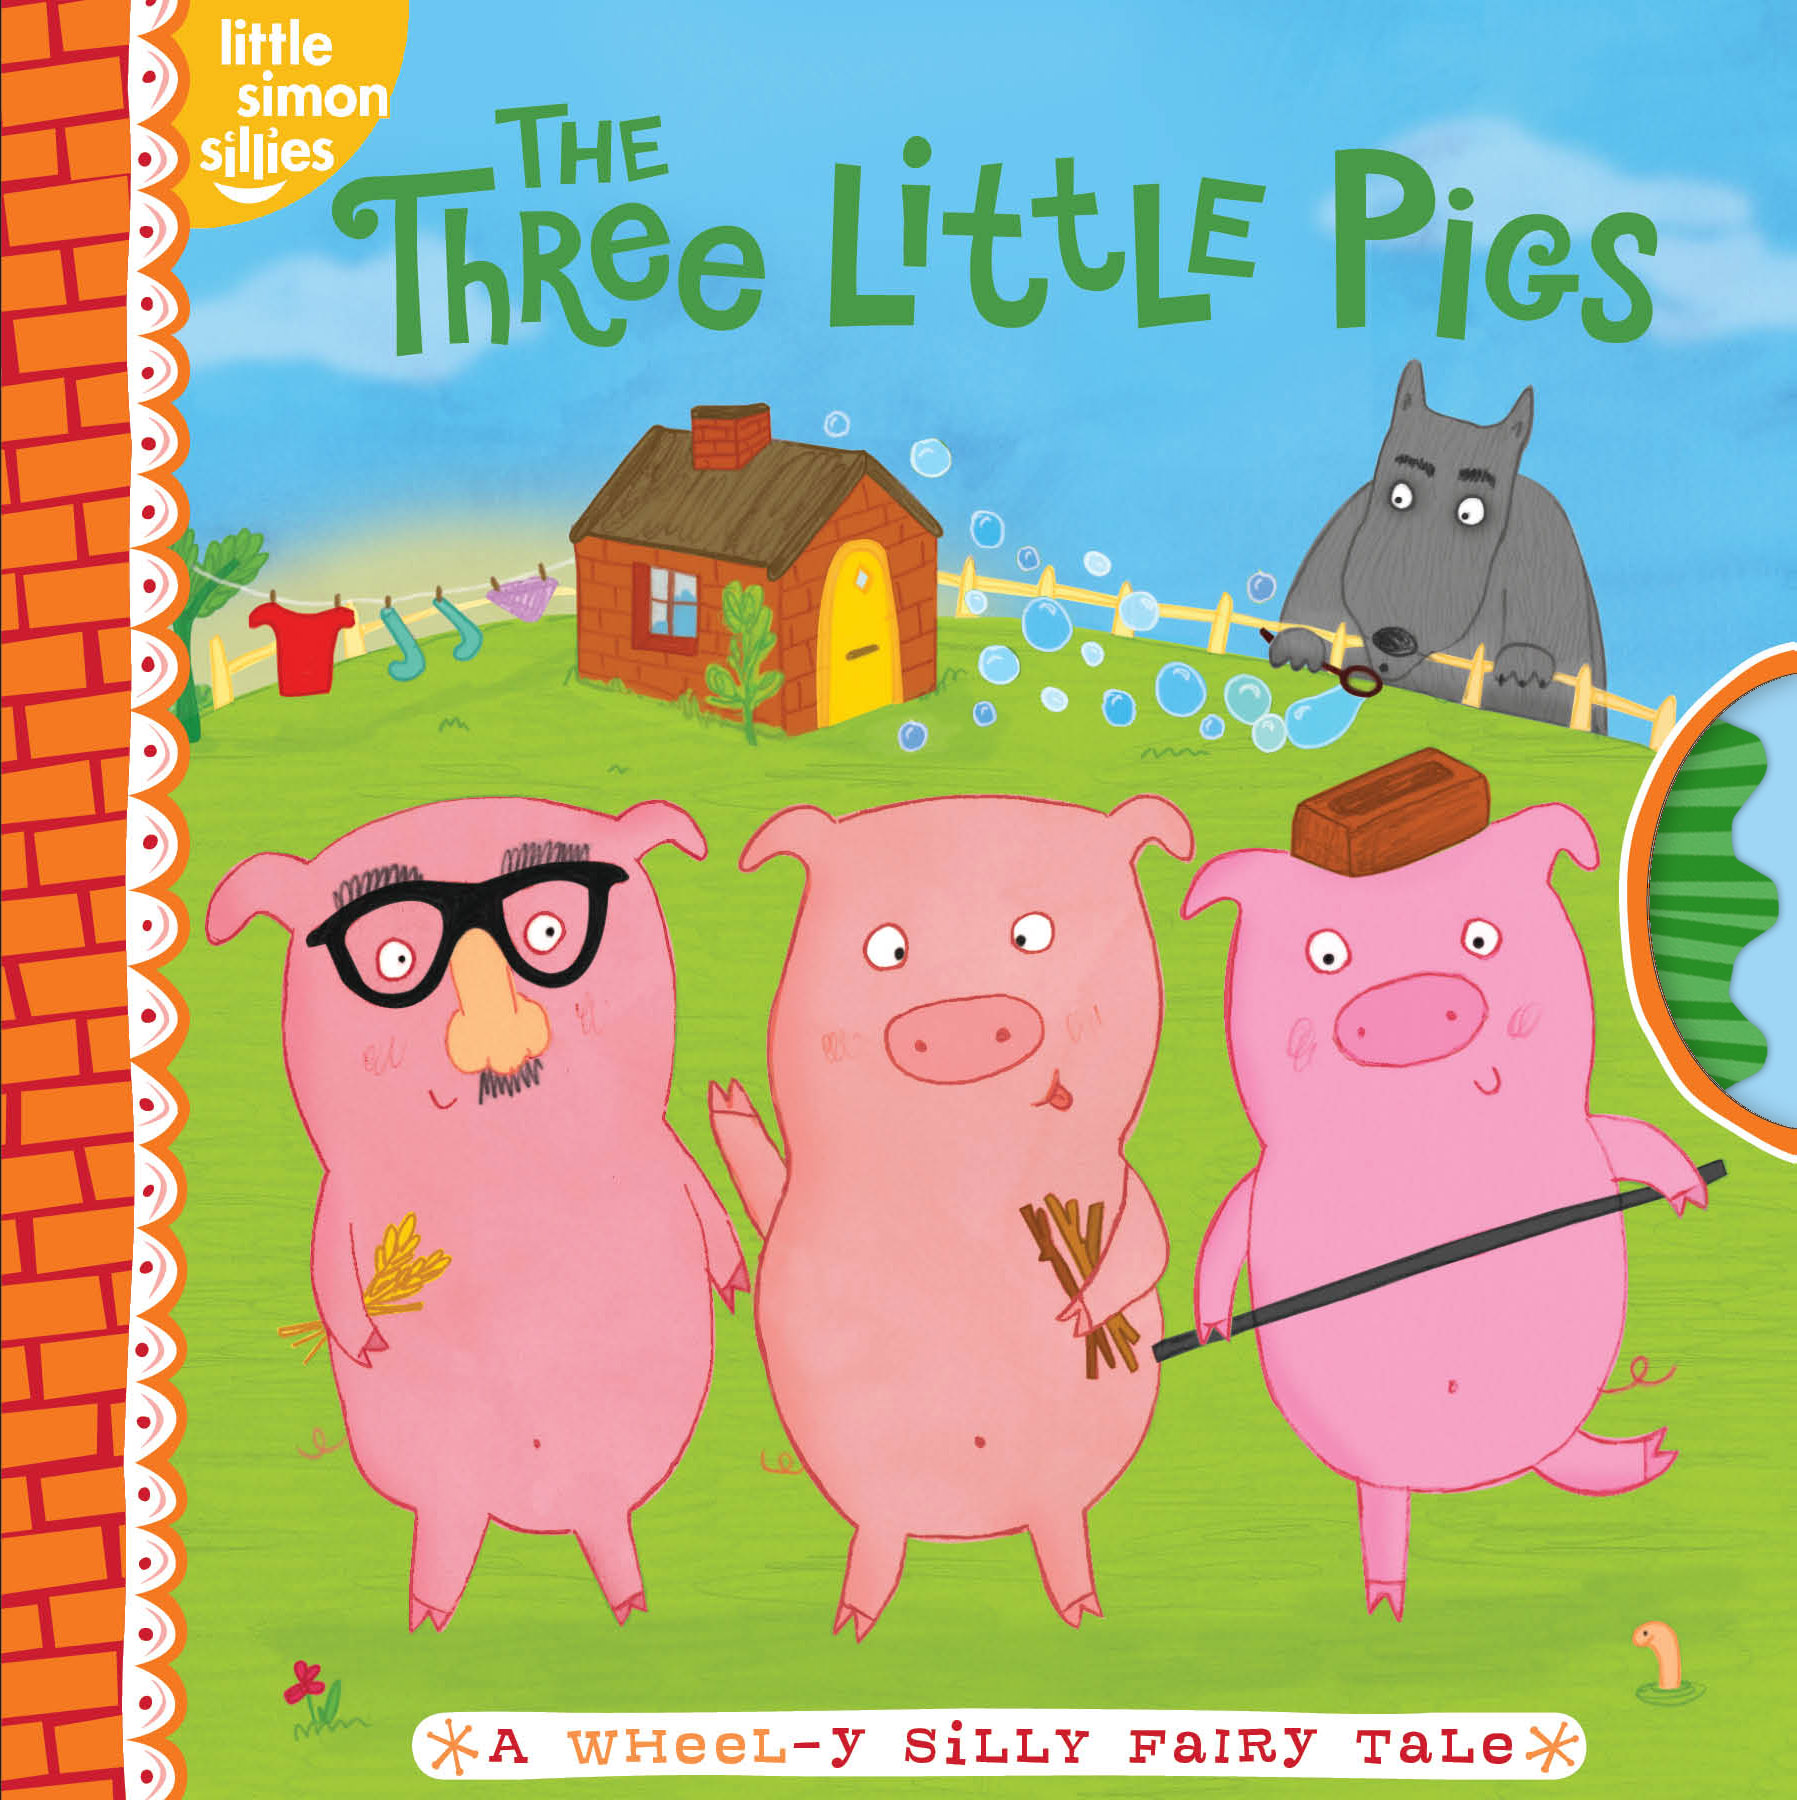 The Three Little Pigs  Book by Tina Gallo Kelly Bryne  Official